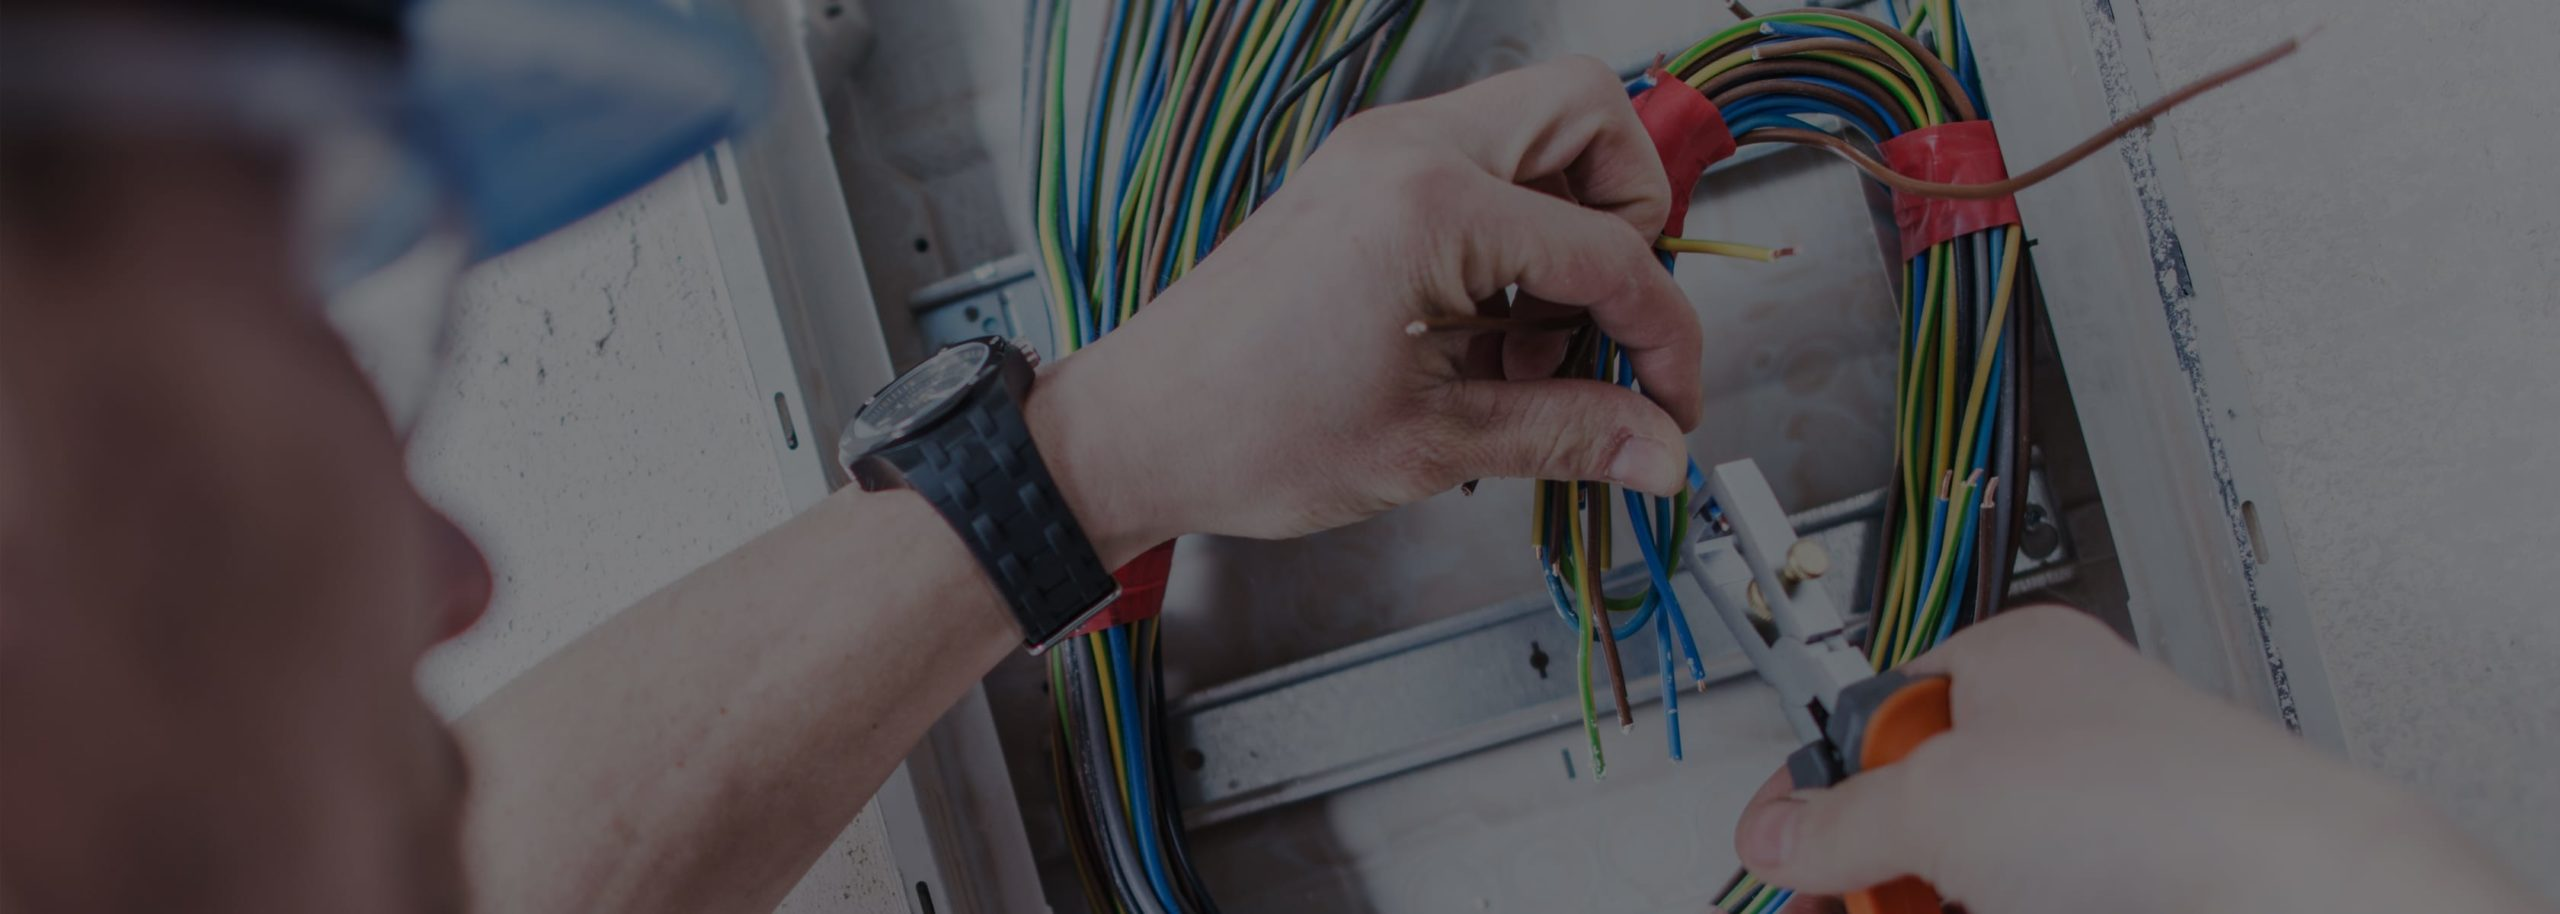 Electrician Leads header image